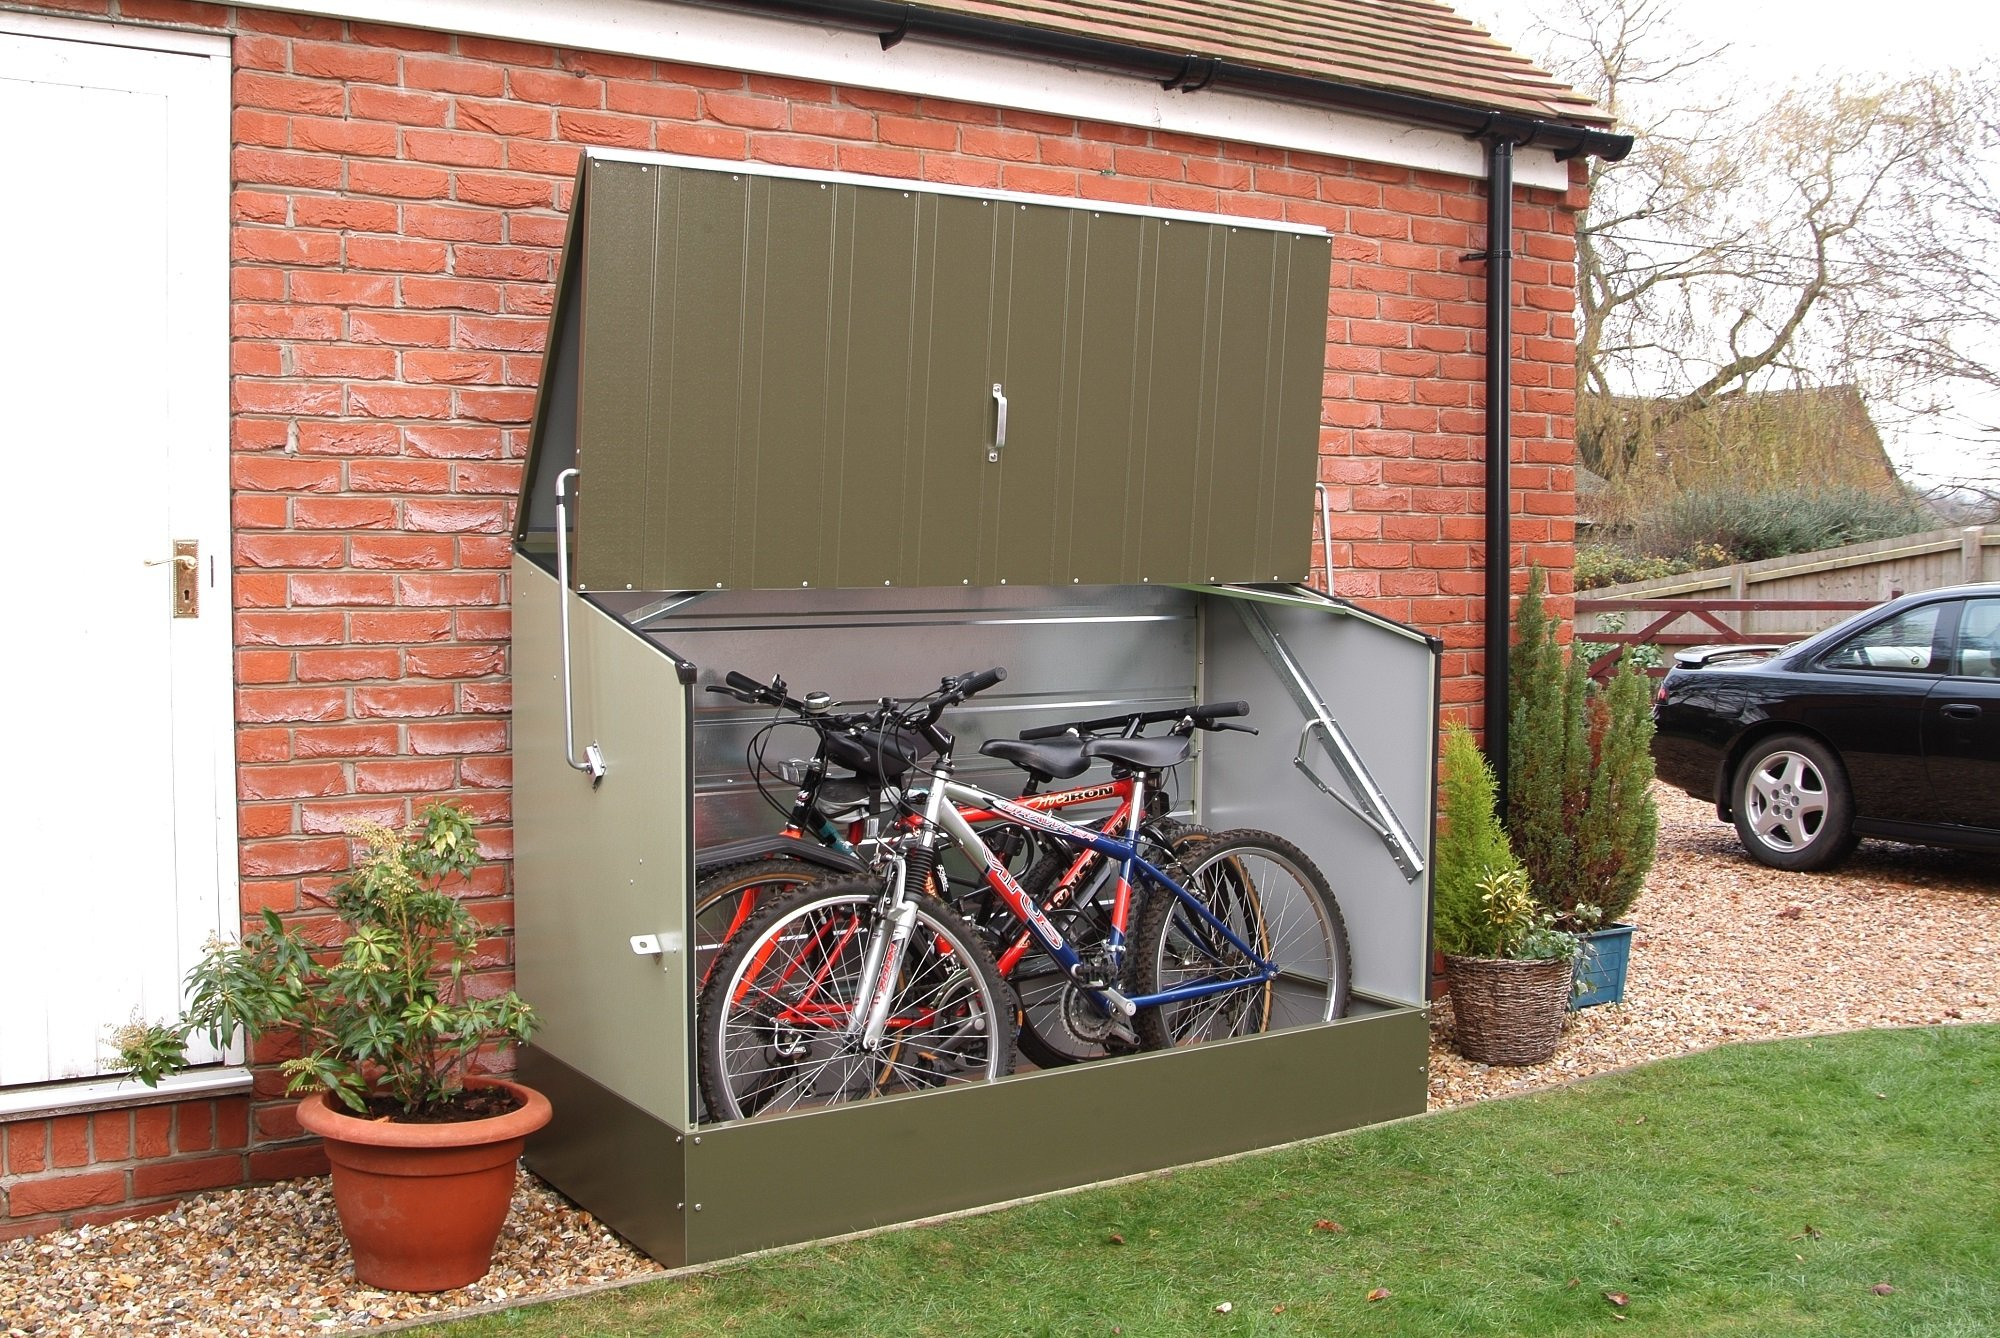 Space Saving Garage Bike Storage Best Outdoor Bike Storage Shed 2019 Ideal Solution For A Small